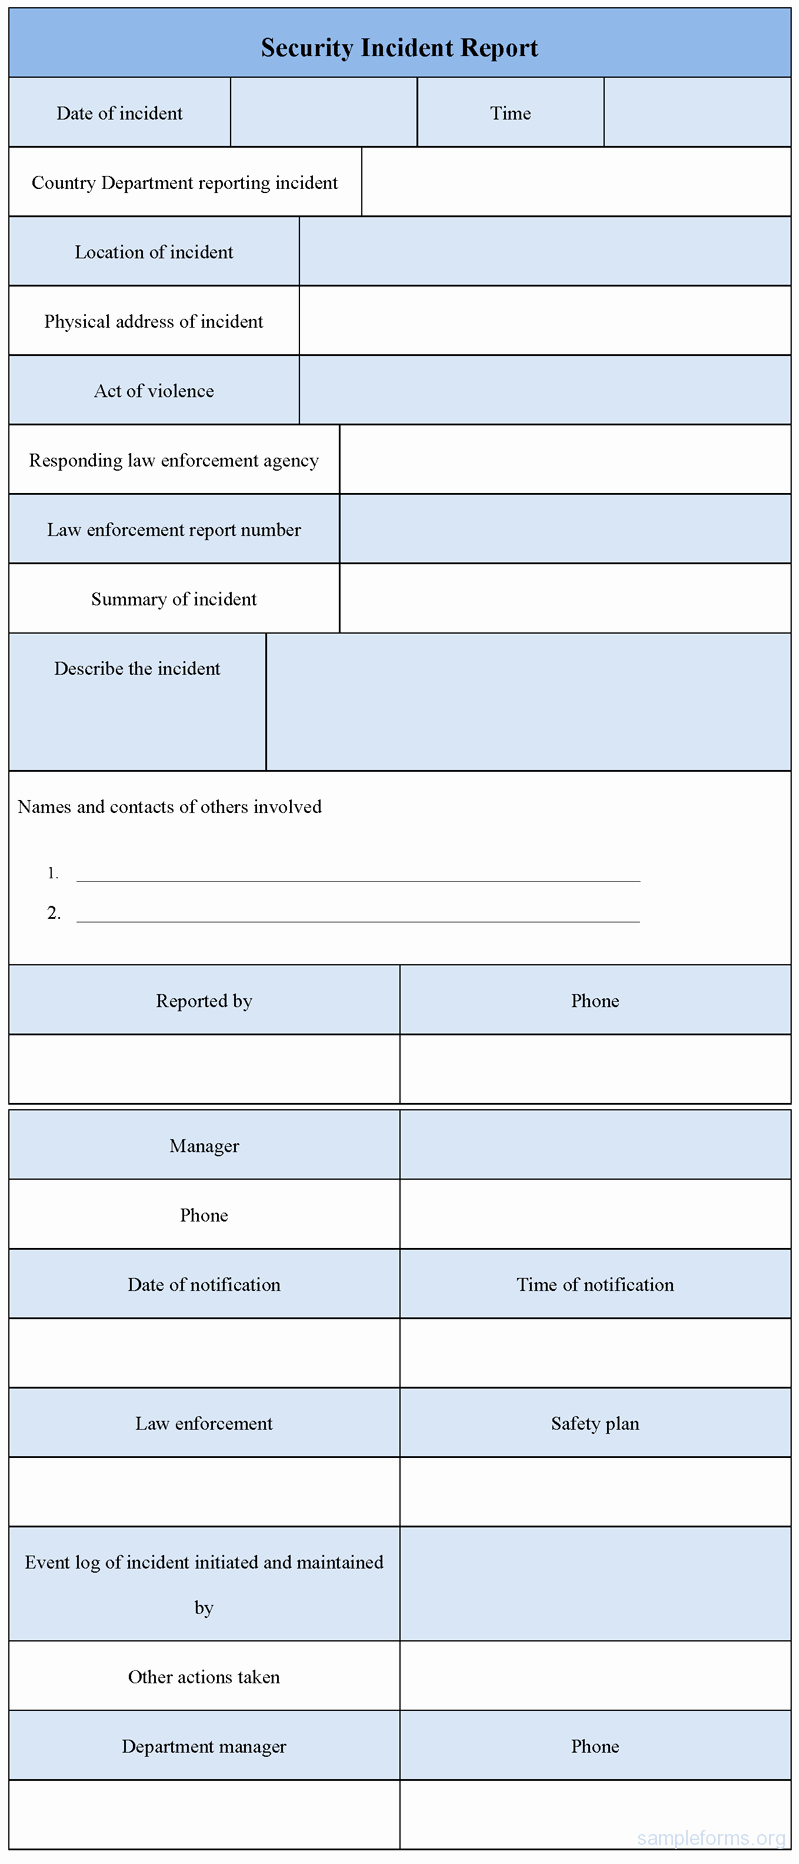 Security Incident Report Template Word Luxury Security Incident Report form Sample forms